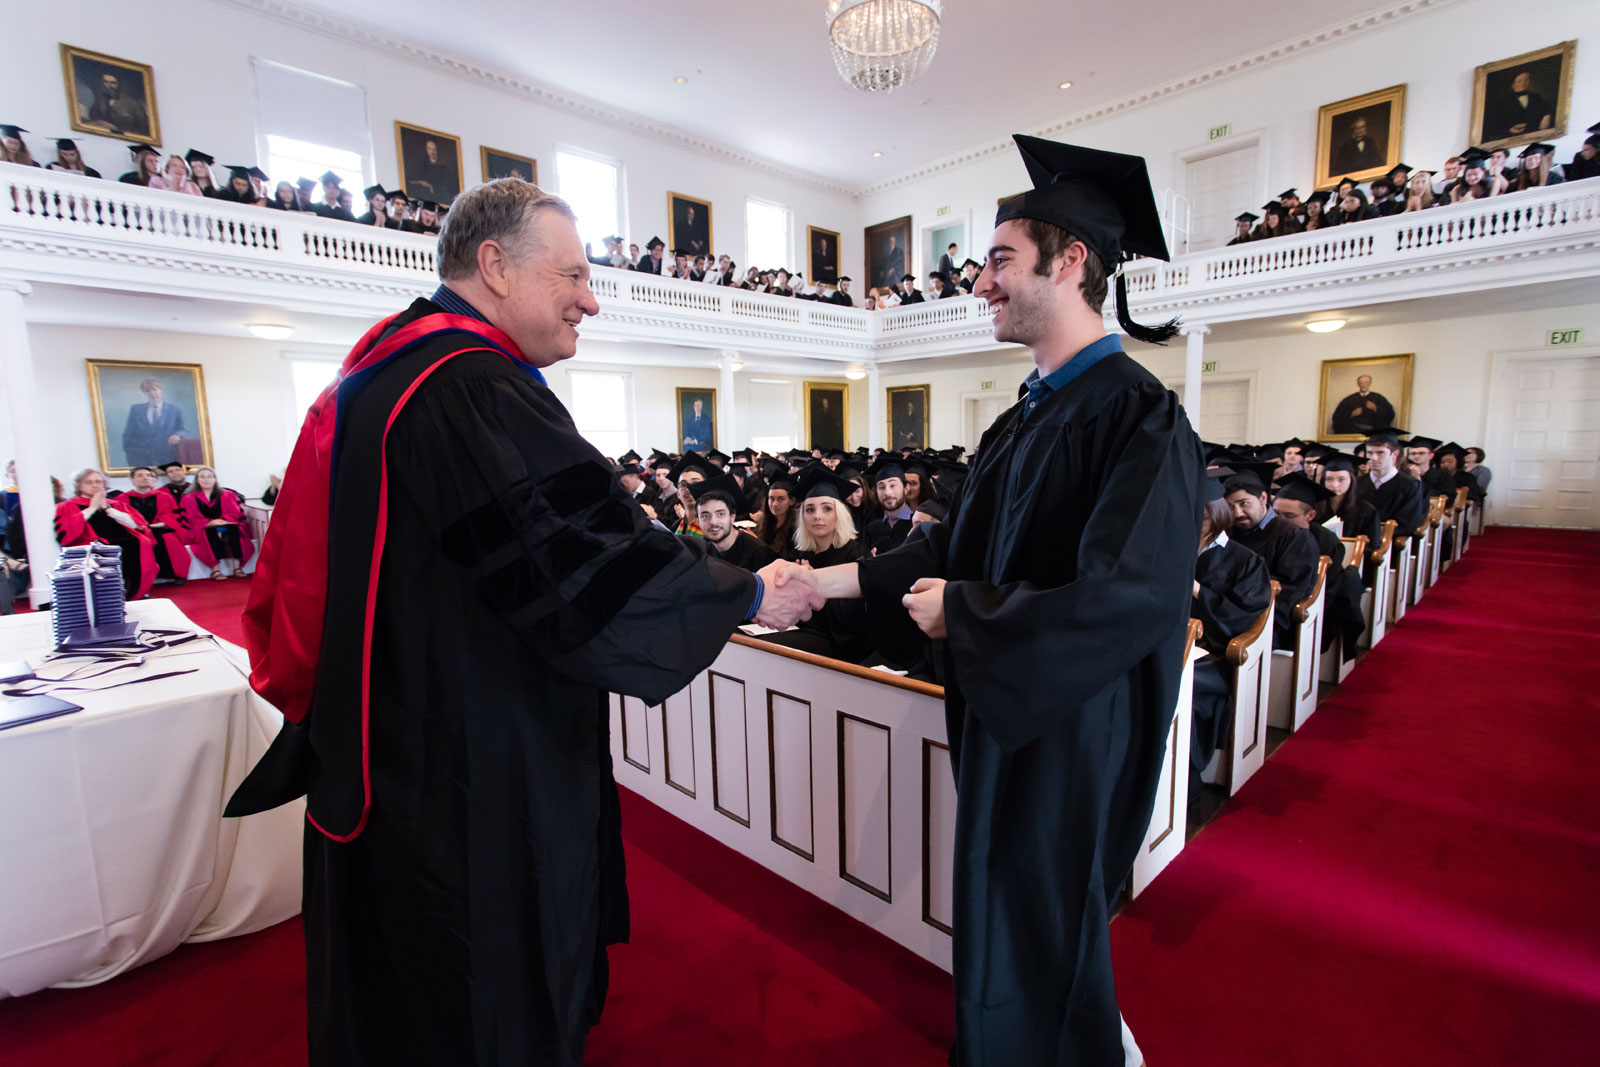 Professor Jack Cheney gives an award to a student